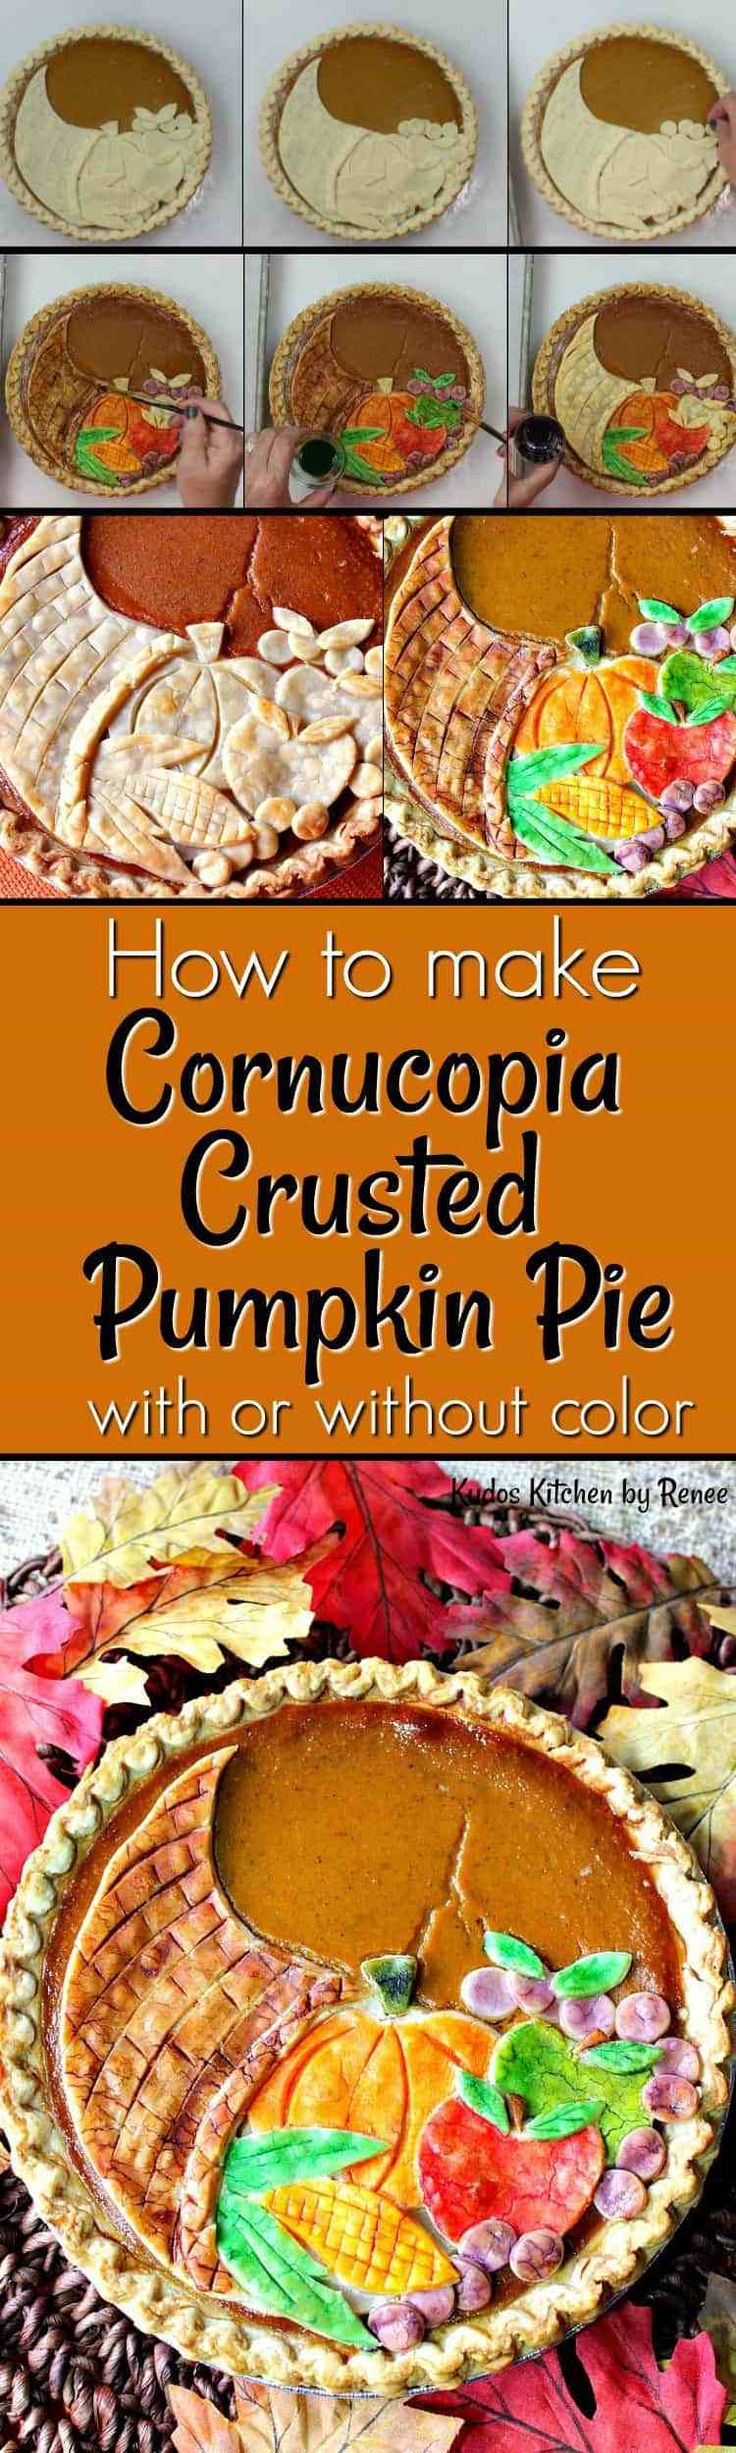 Kick up your pumpkin pie game this Thanksgiving by making this Festive Cornucopia Crusted Pumpkin Pie. It's easier to make than you may think. Let me show you how. - Kudos Kitchen by Renee